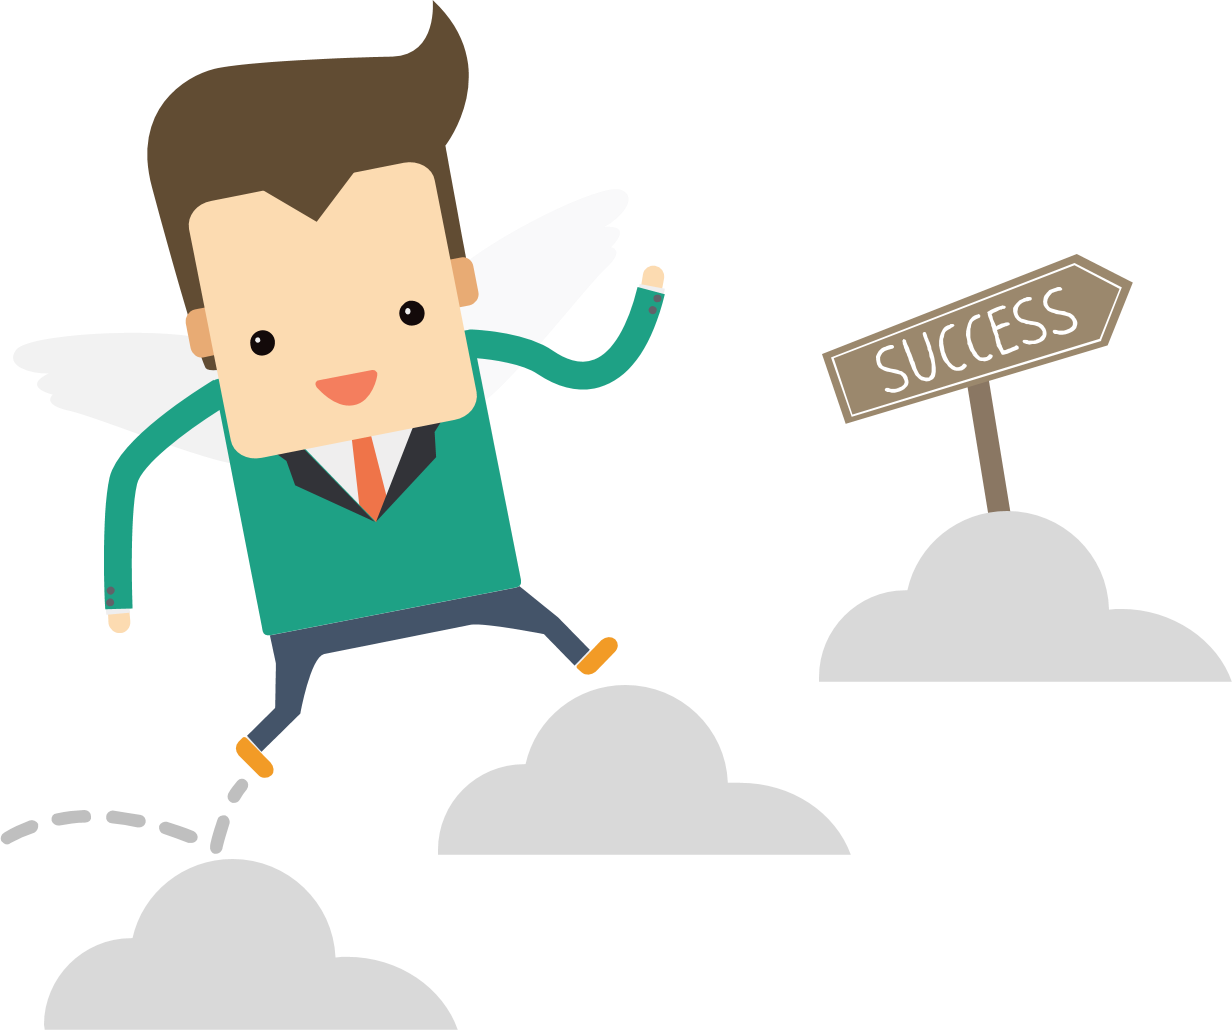 Delta success aasuccess we. Manager clipart successful